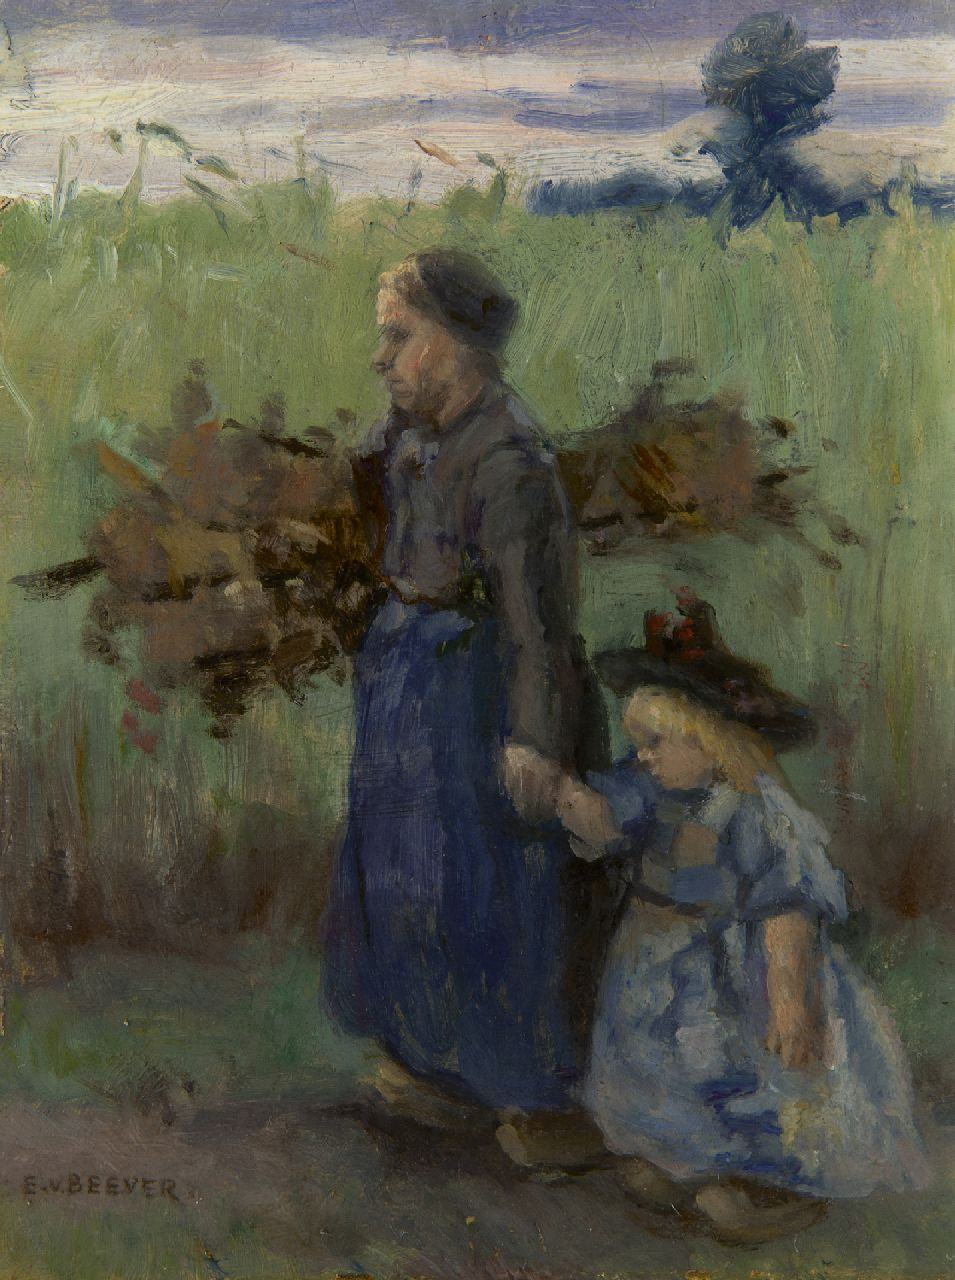 Beever E.S. van | 'Emanuël' Samson van Beever, Going home through the fields, oil on panel 17.9 x 13.7 cm, signed l.l.